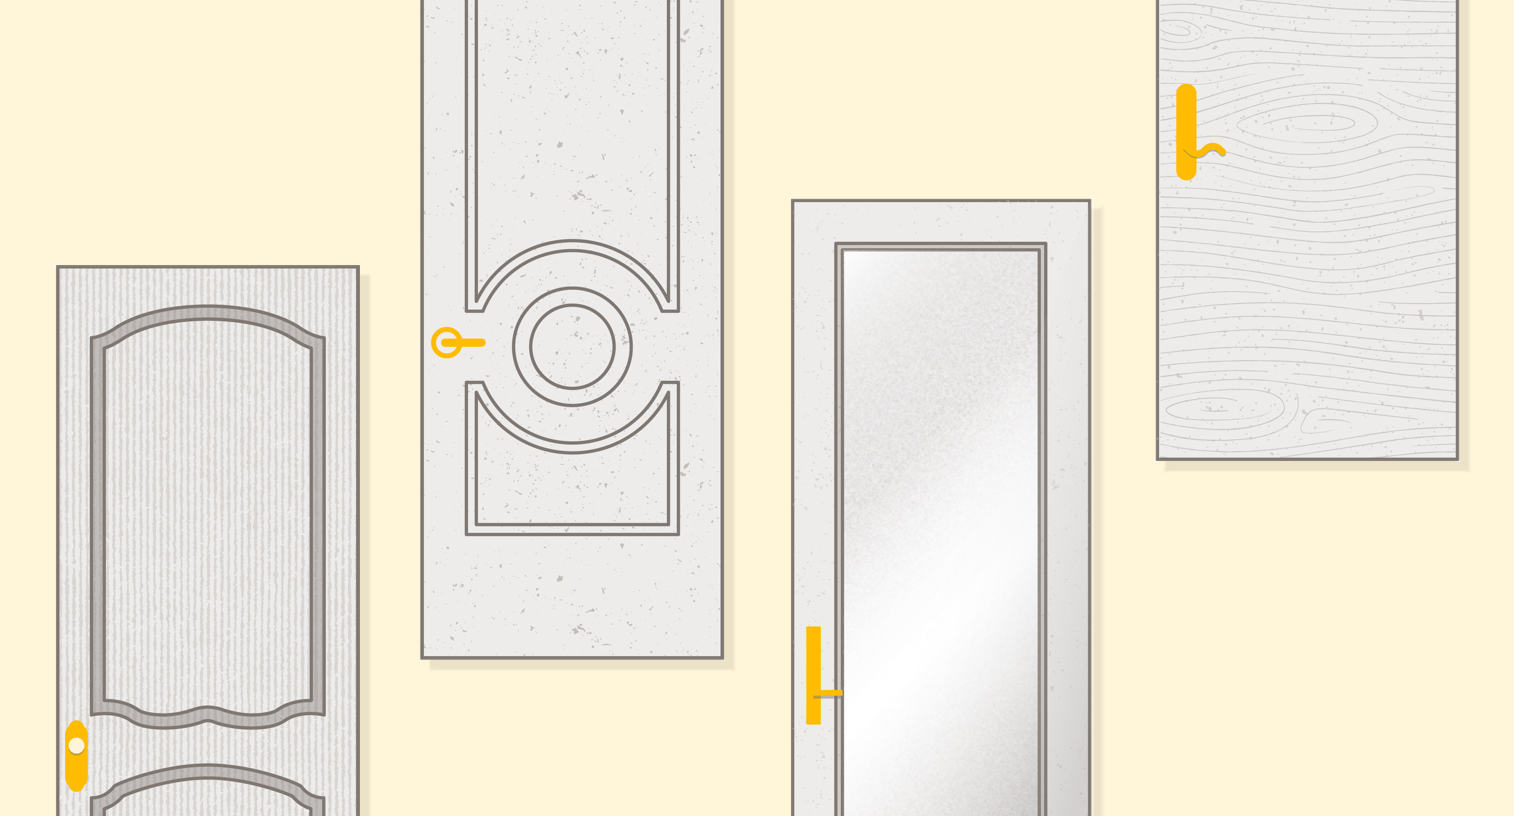 How to Install an Interior Door